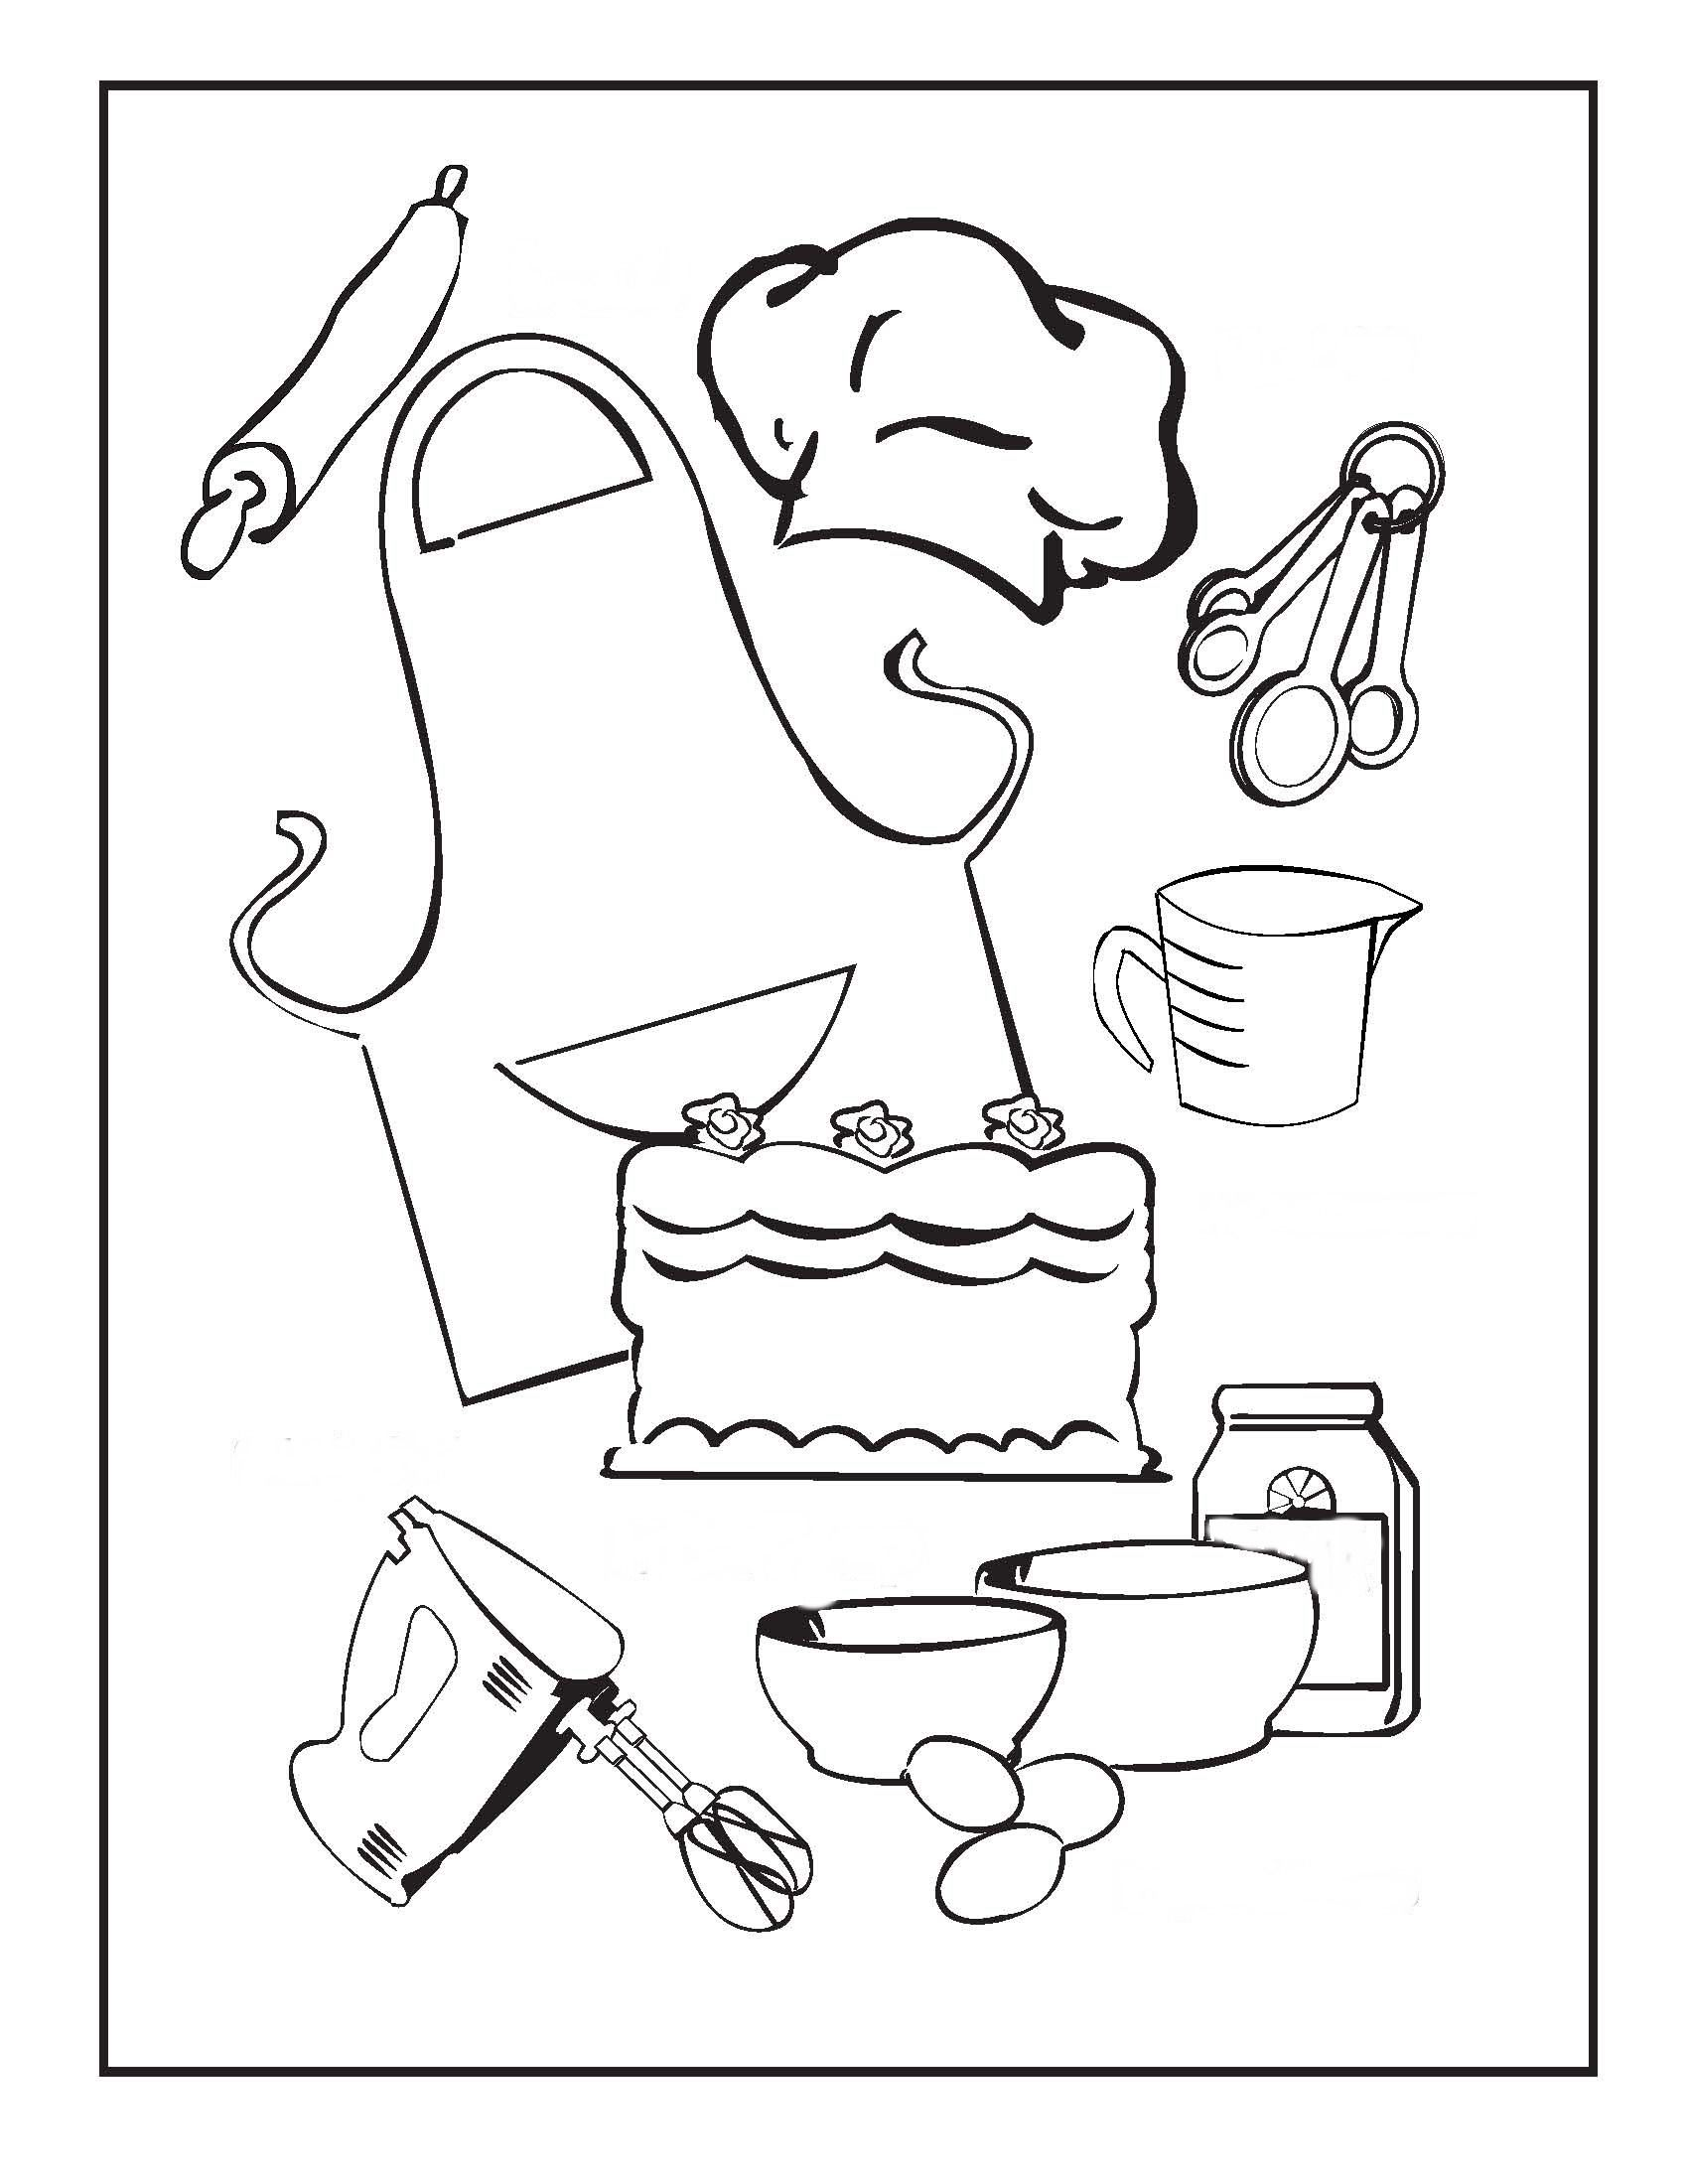 Cooking And Baking Coloring Pages Birthday Printable Recipes To